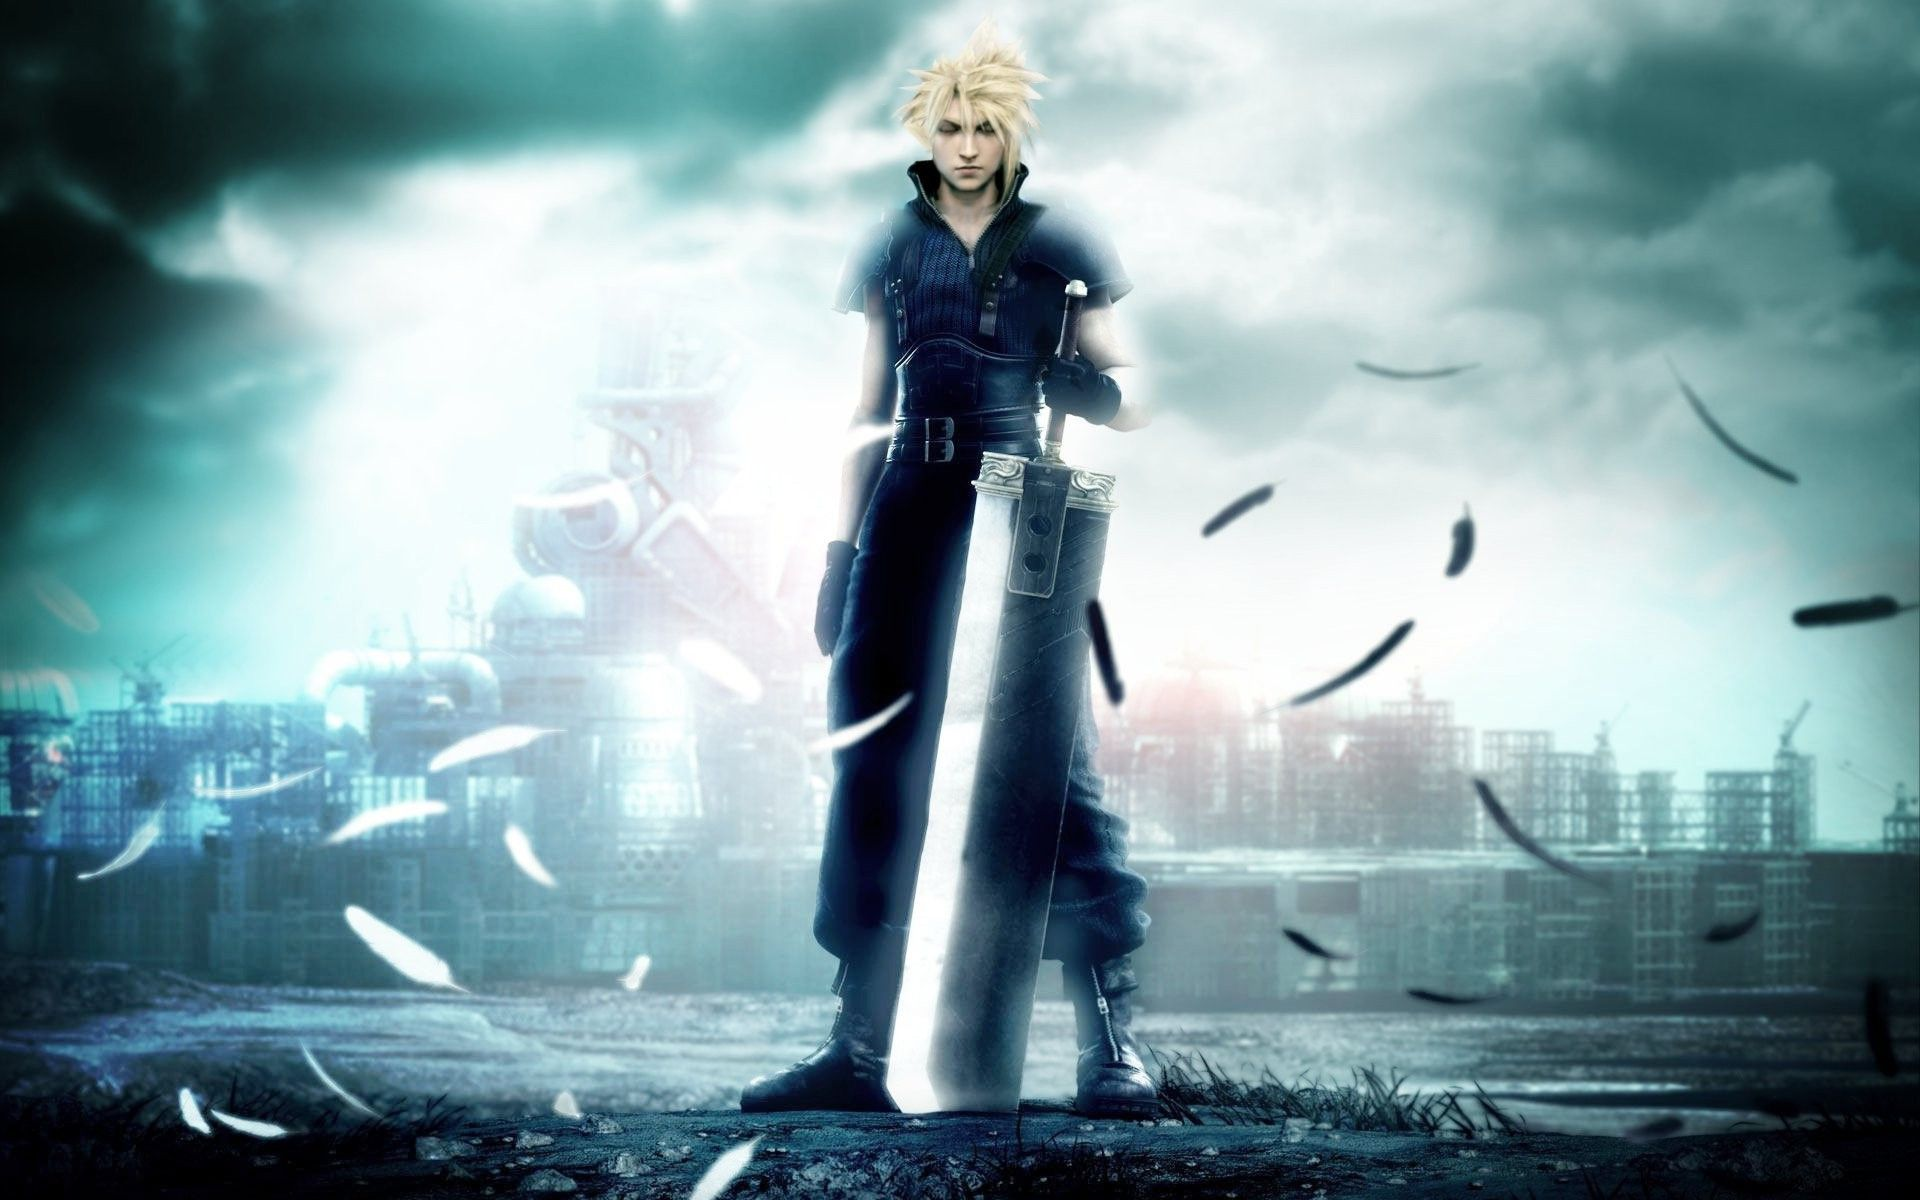 Cloud Strife Wallpapers Top Free Cloud Strife Backgrounds